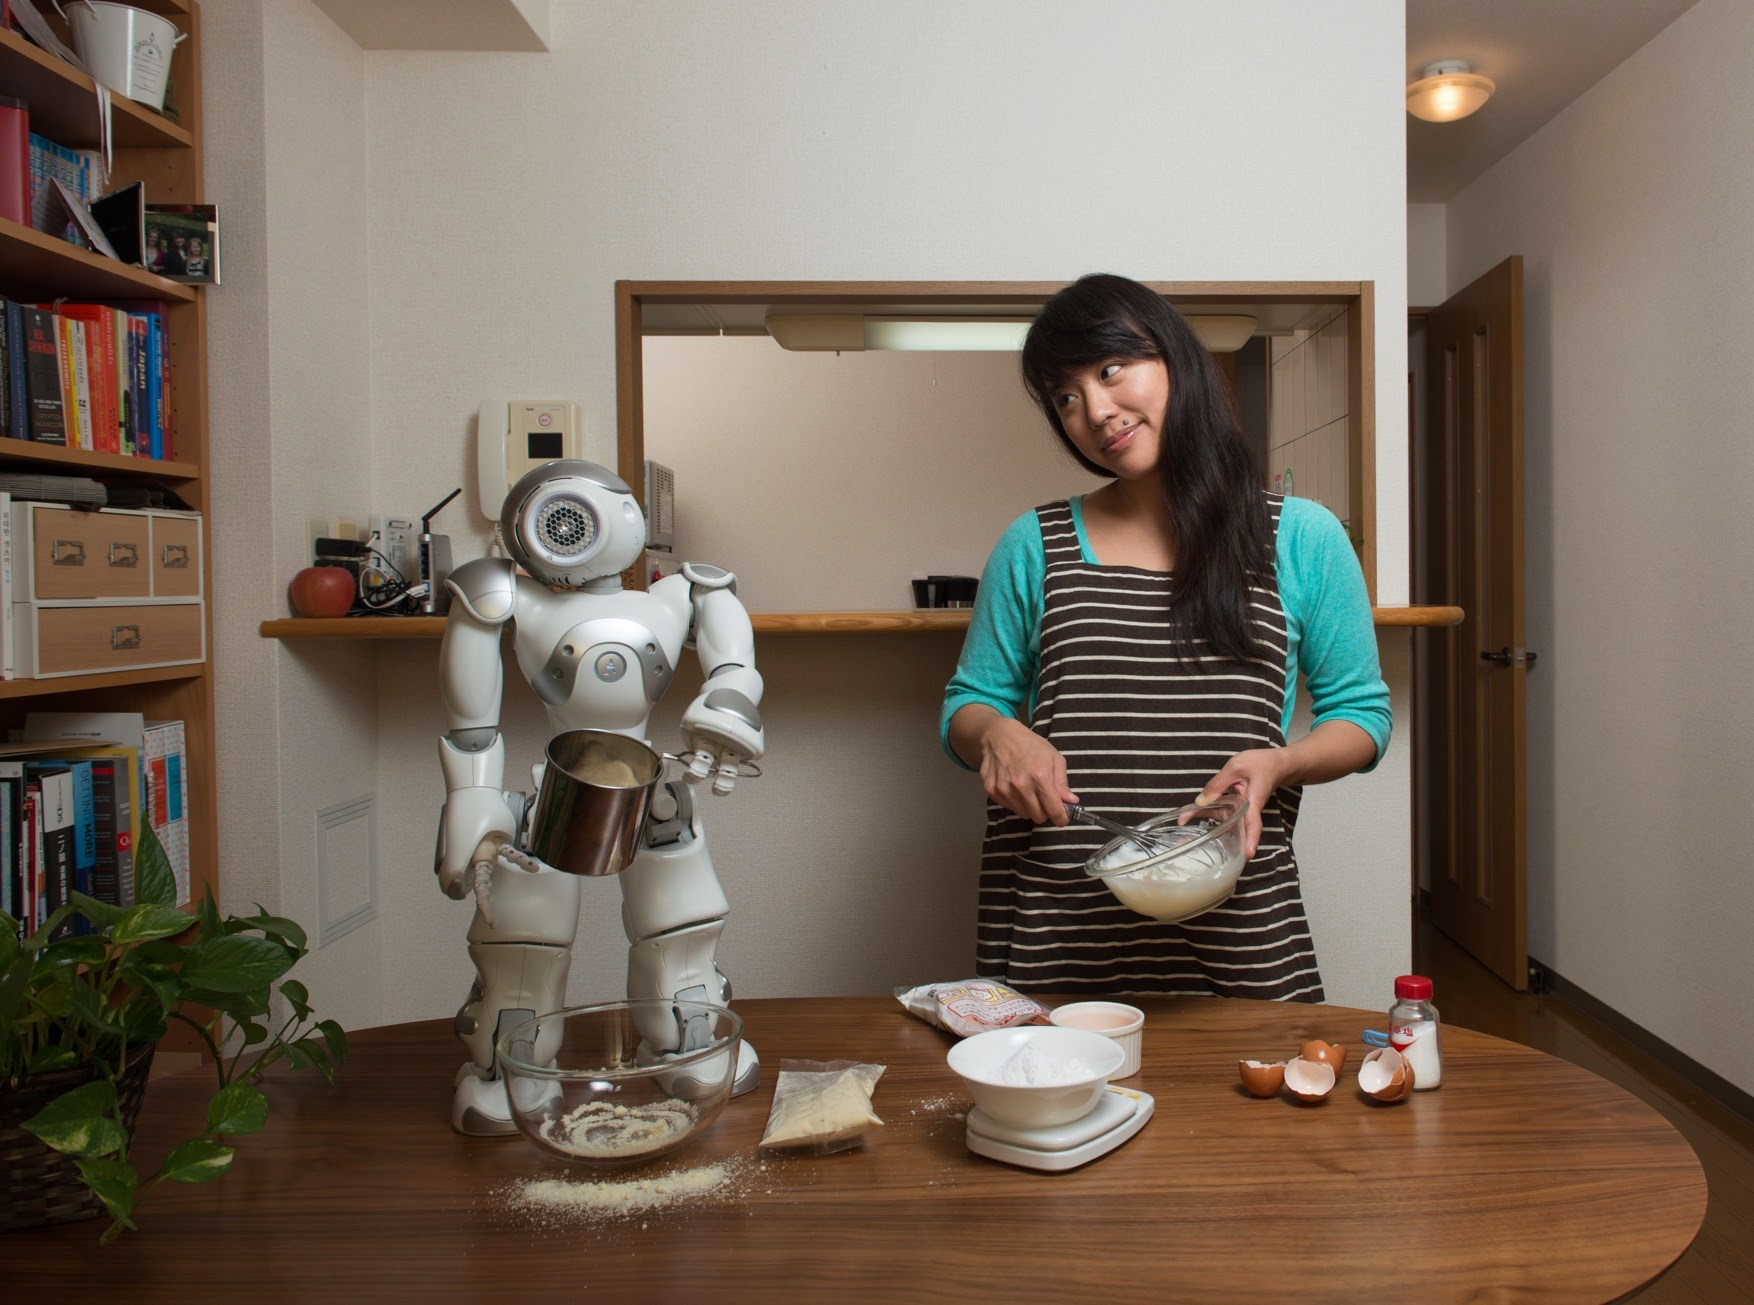 Angelica Lim Works at the Intersection of Functional and Social Robots